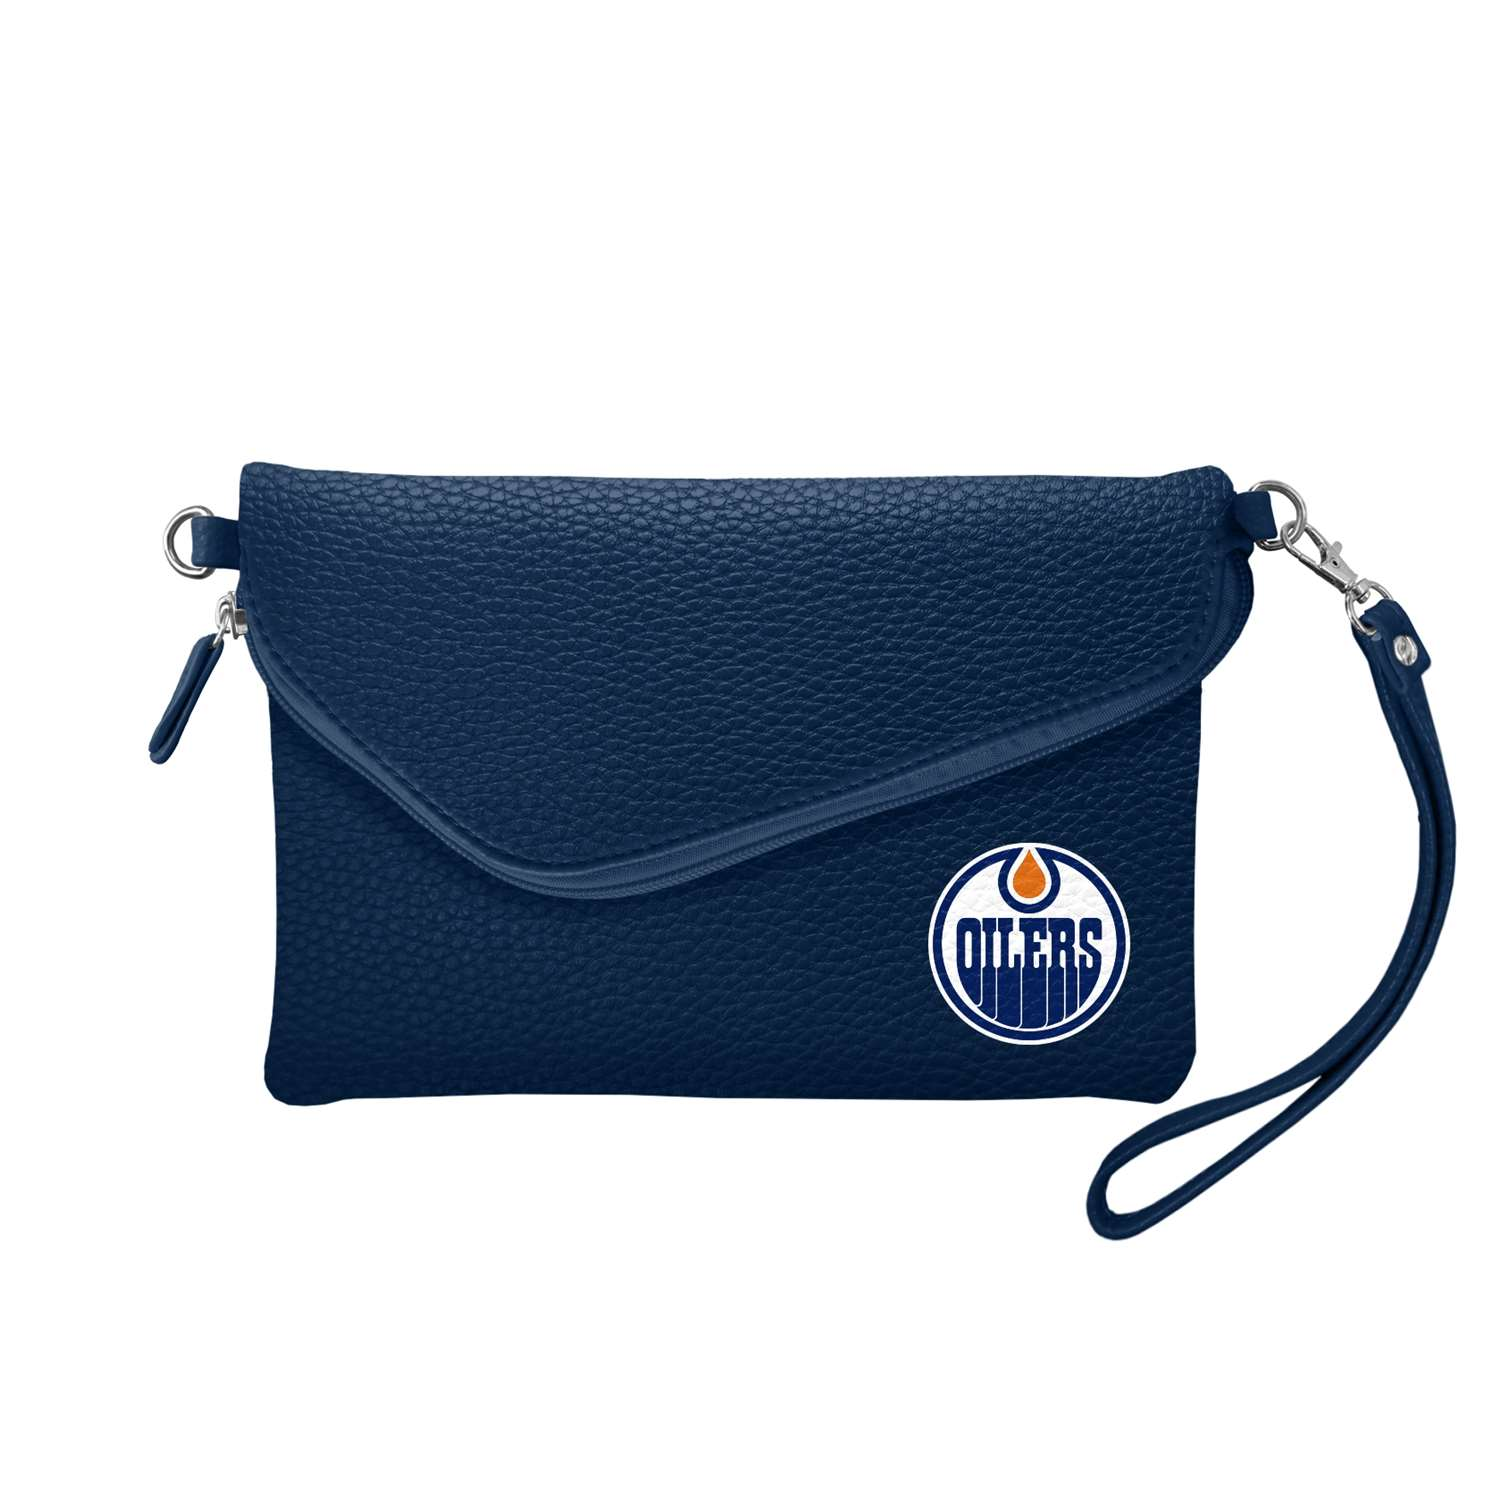 Hockey Nhl Hockey Edmonton Oilers Bath - 500432-oilr-navy - Edmonton Oilers Fold Over Crossbody Pebble 500432-OILR-NAVY